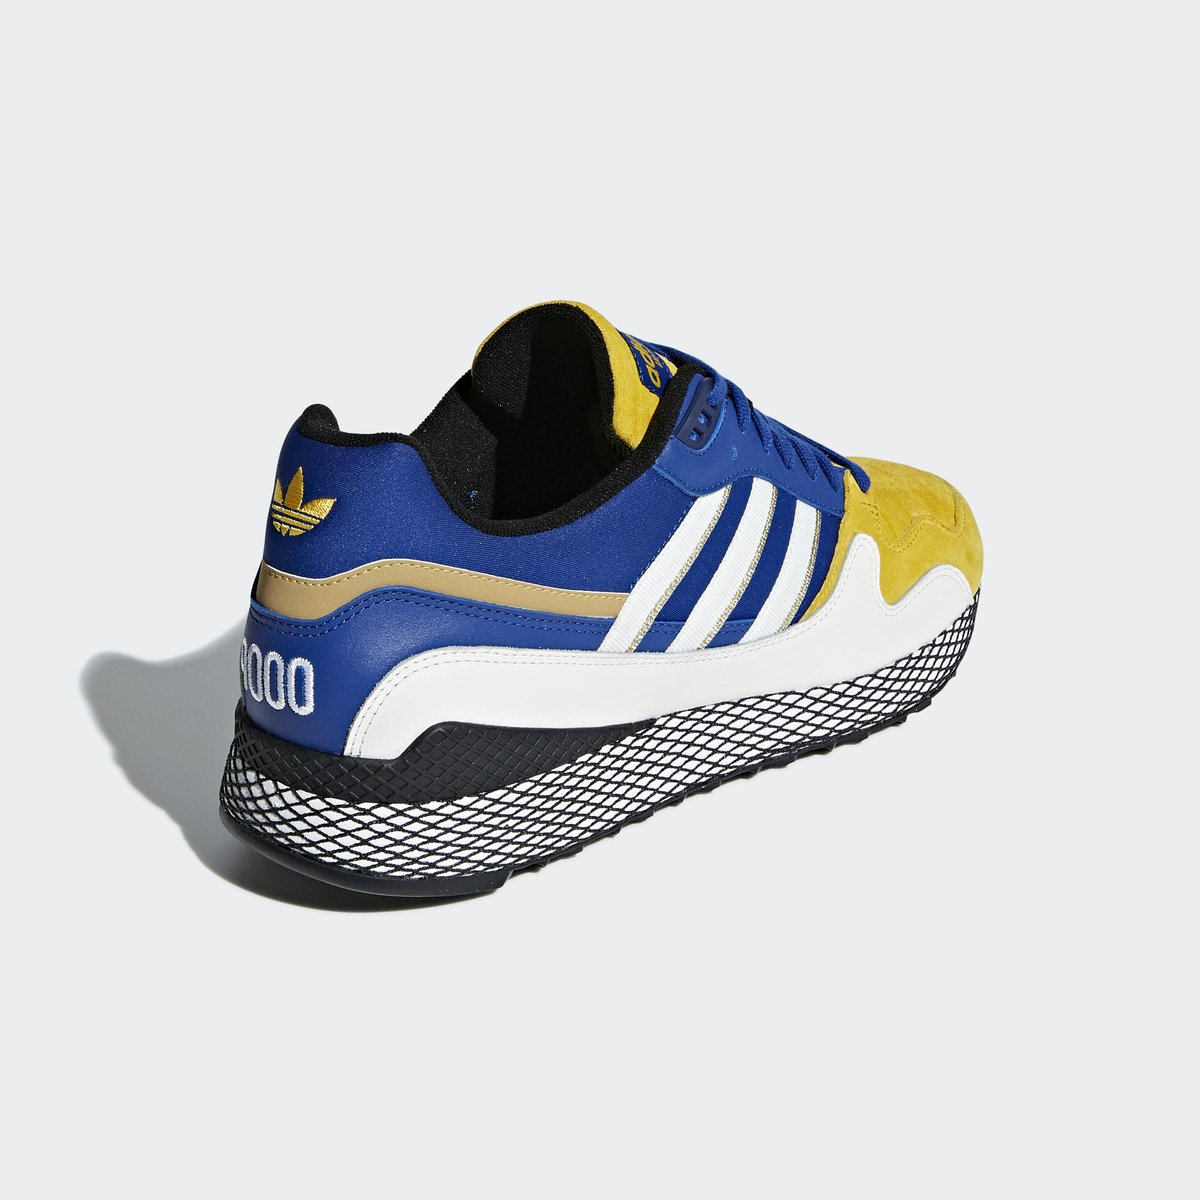 timeless design 6ac77 f64d1 Official Images of Dragon Ball Z x adidas Ultra Tech  Vegeta  releasing  this month Sign up   stay up to date    http   bit.ly 2OaZxZM pic.twitter. com  ...